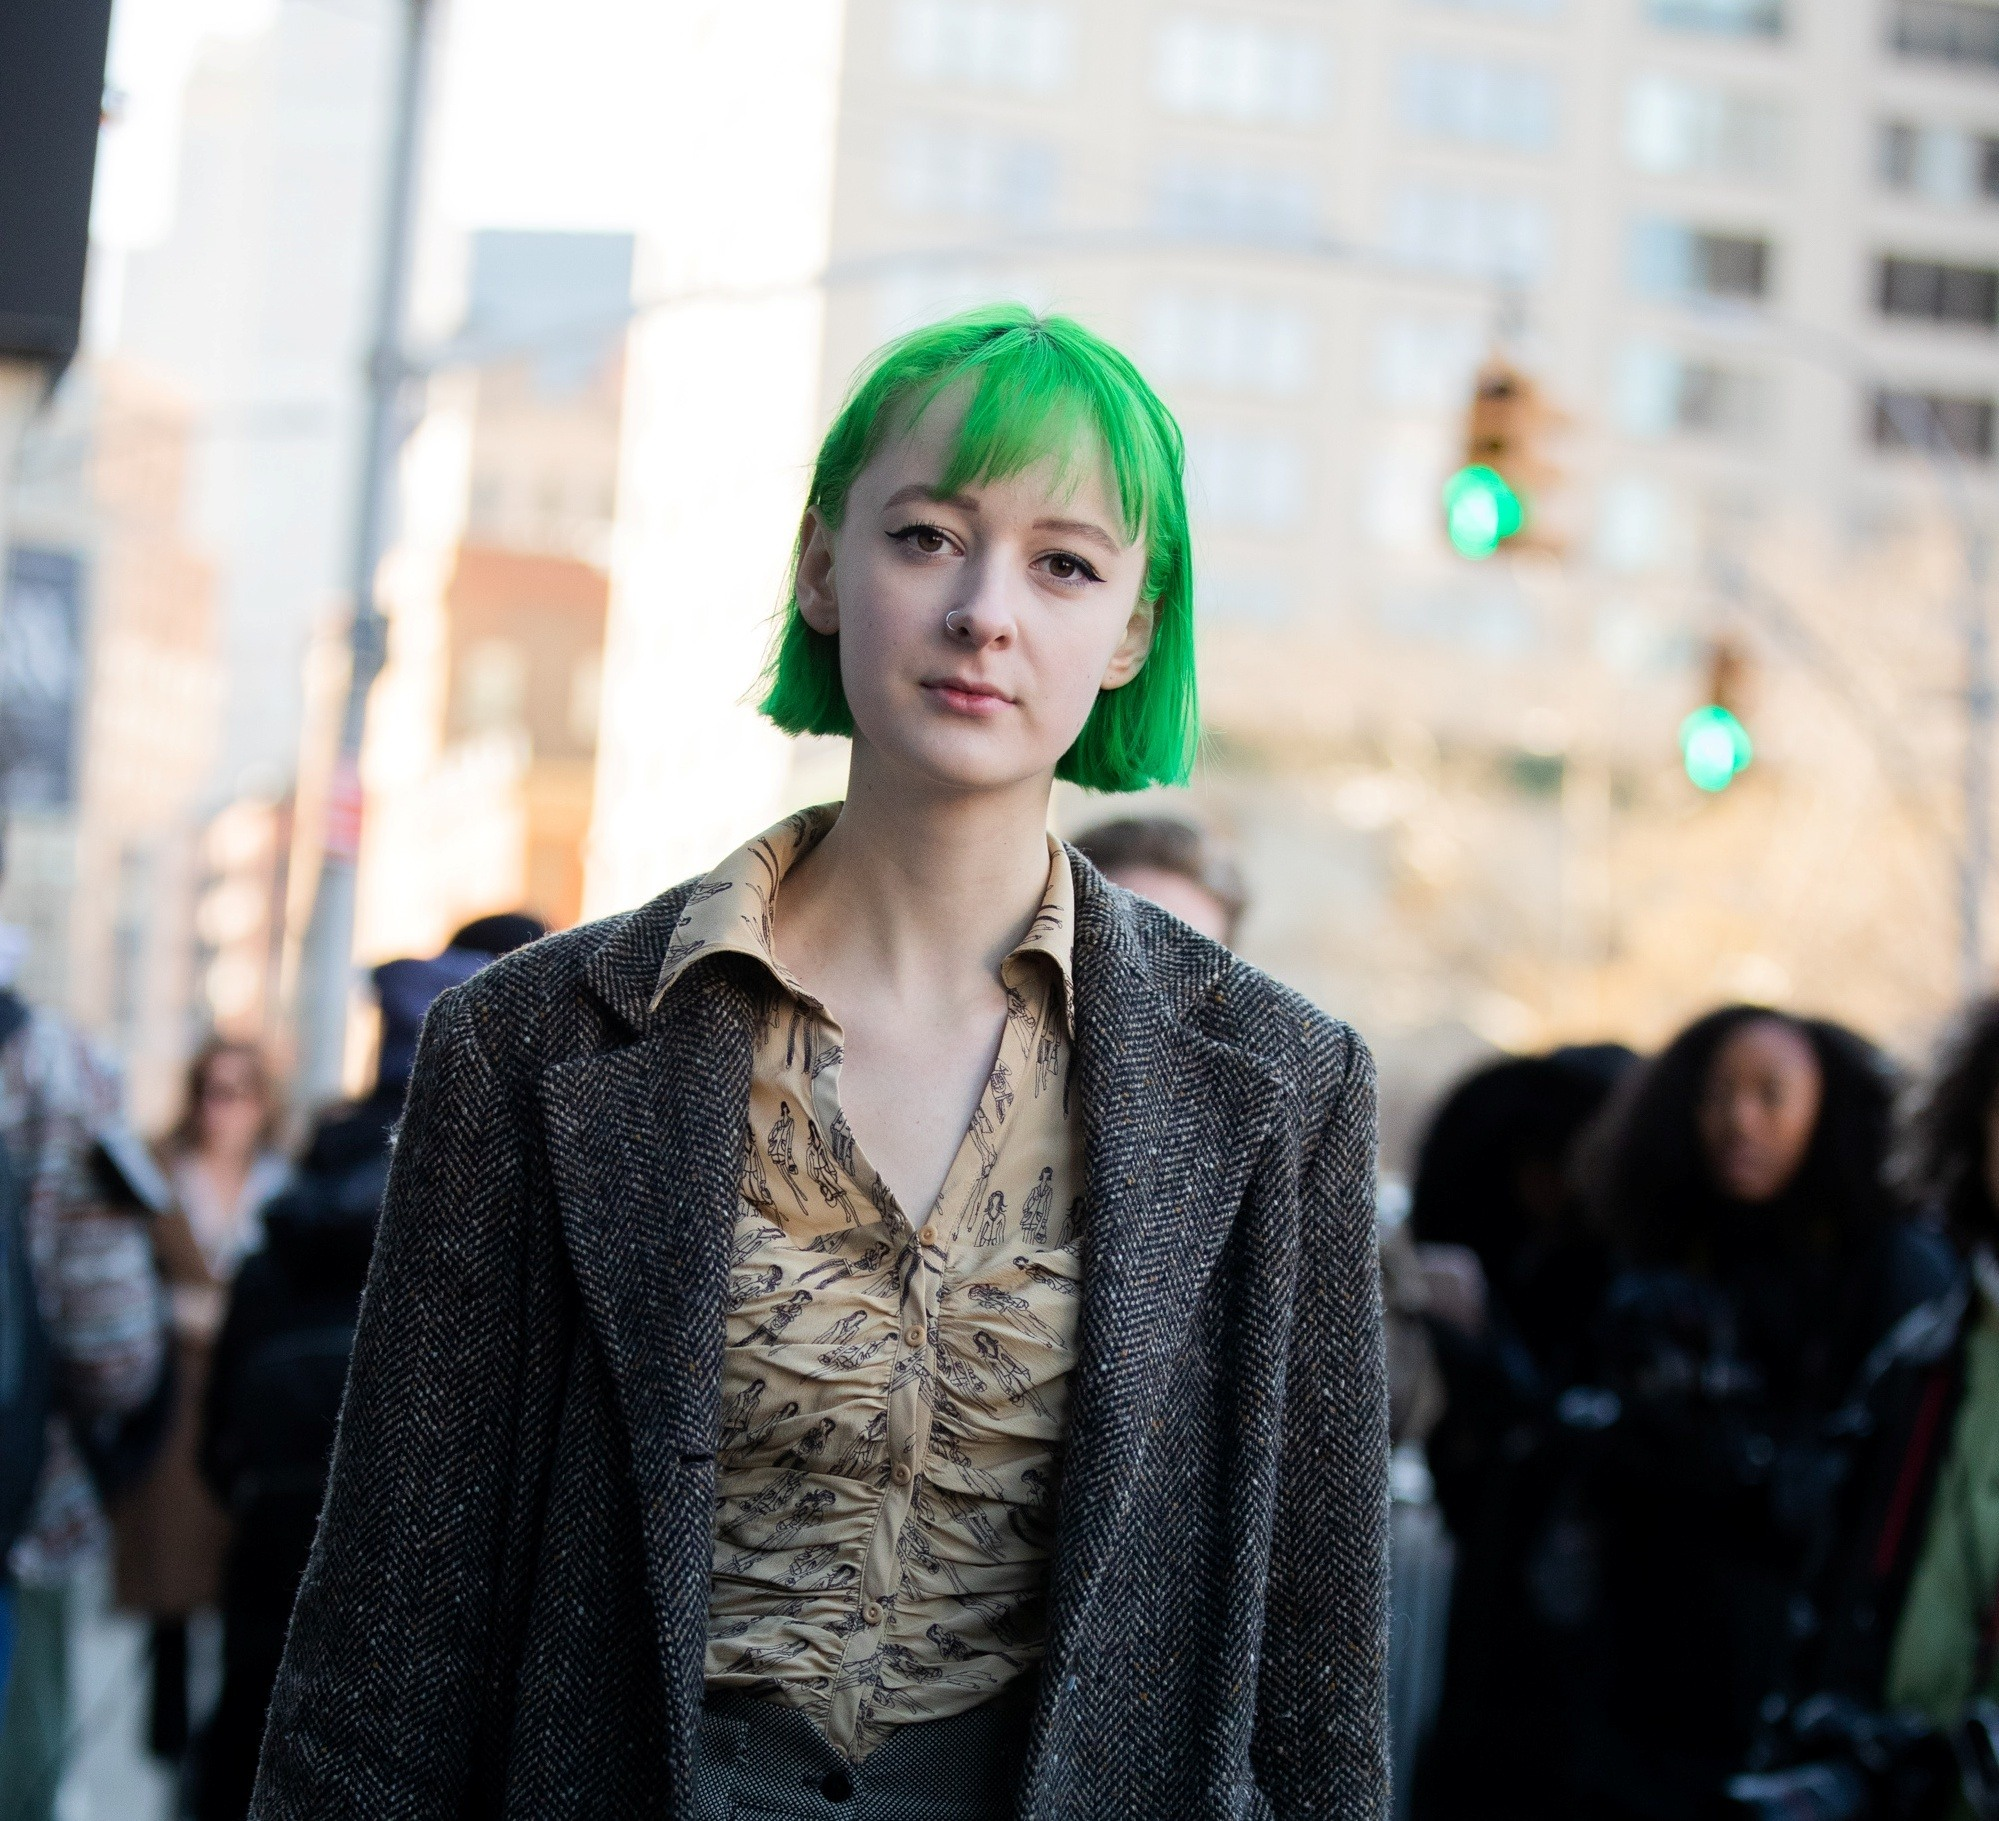 Street style hair inspiration: Woman with pale skin with a green short bob with bangs wearing dark jacket outdoors